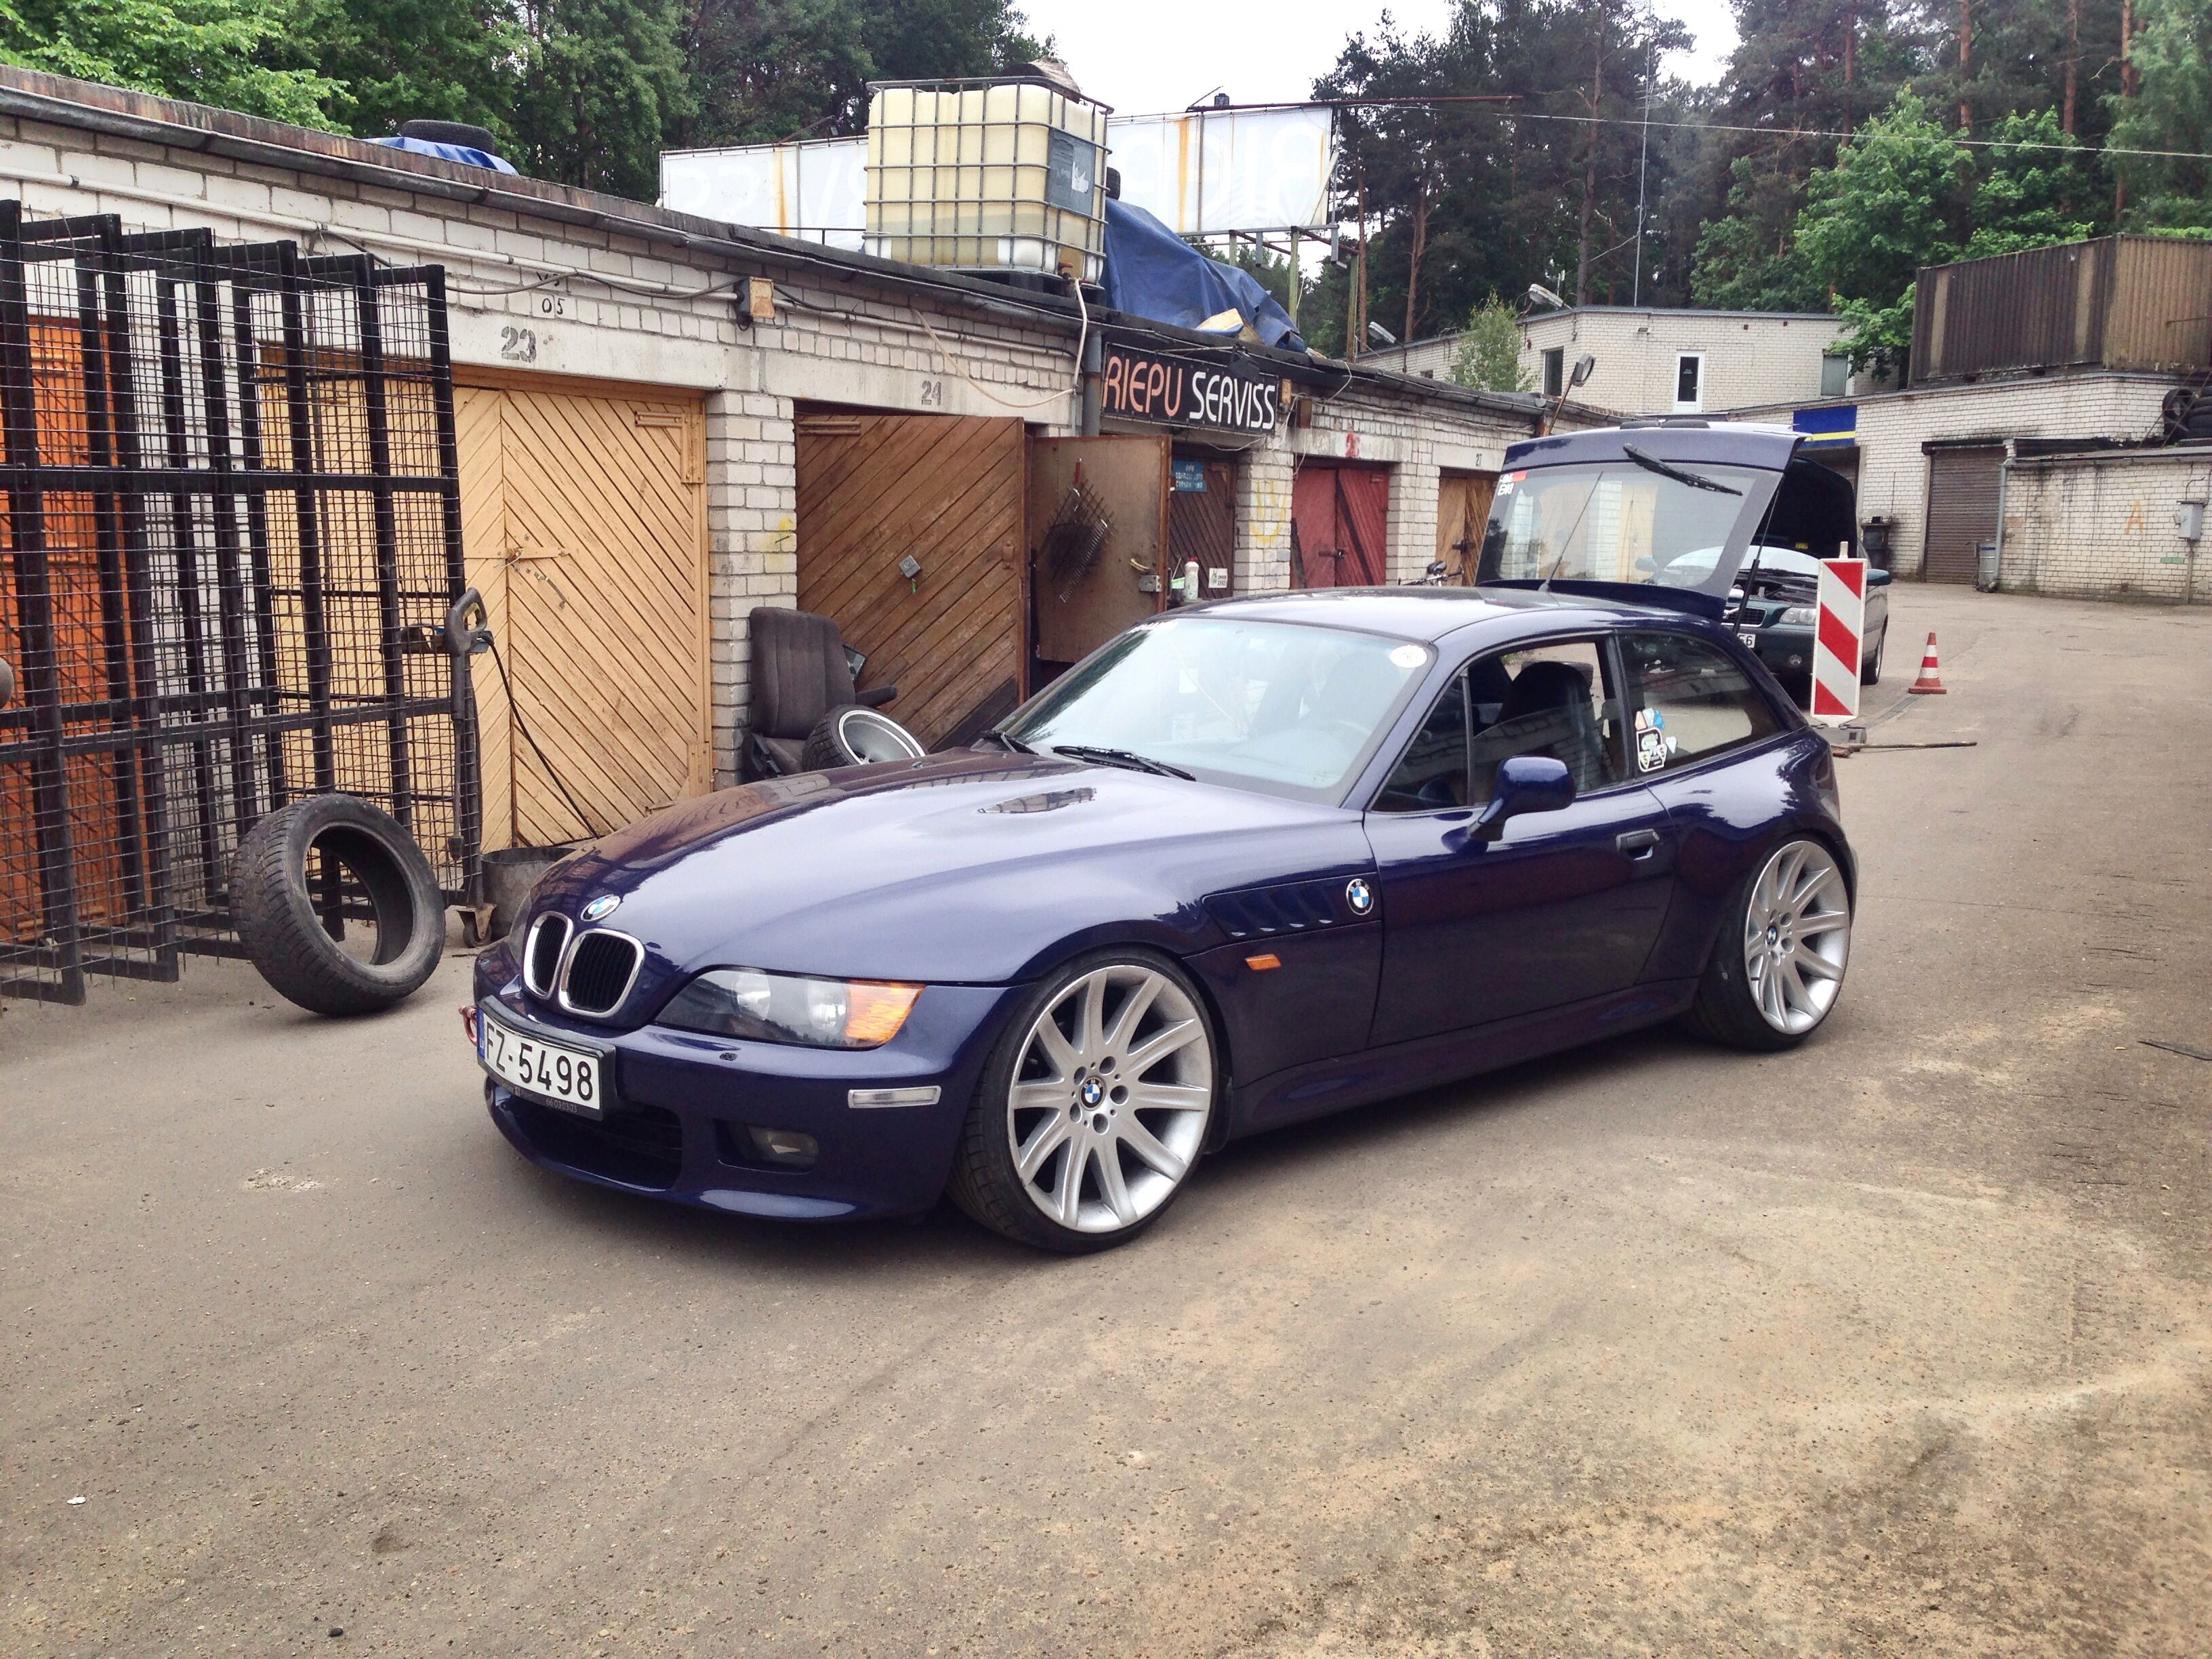 Bmw Z3 Coupe On Style 95 Wheels Diy Amp Crafts Pinterest Coupe Wheels And Style